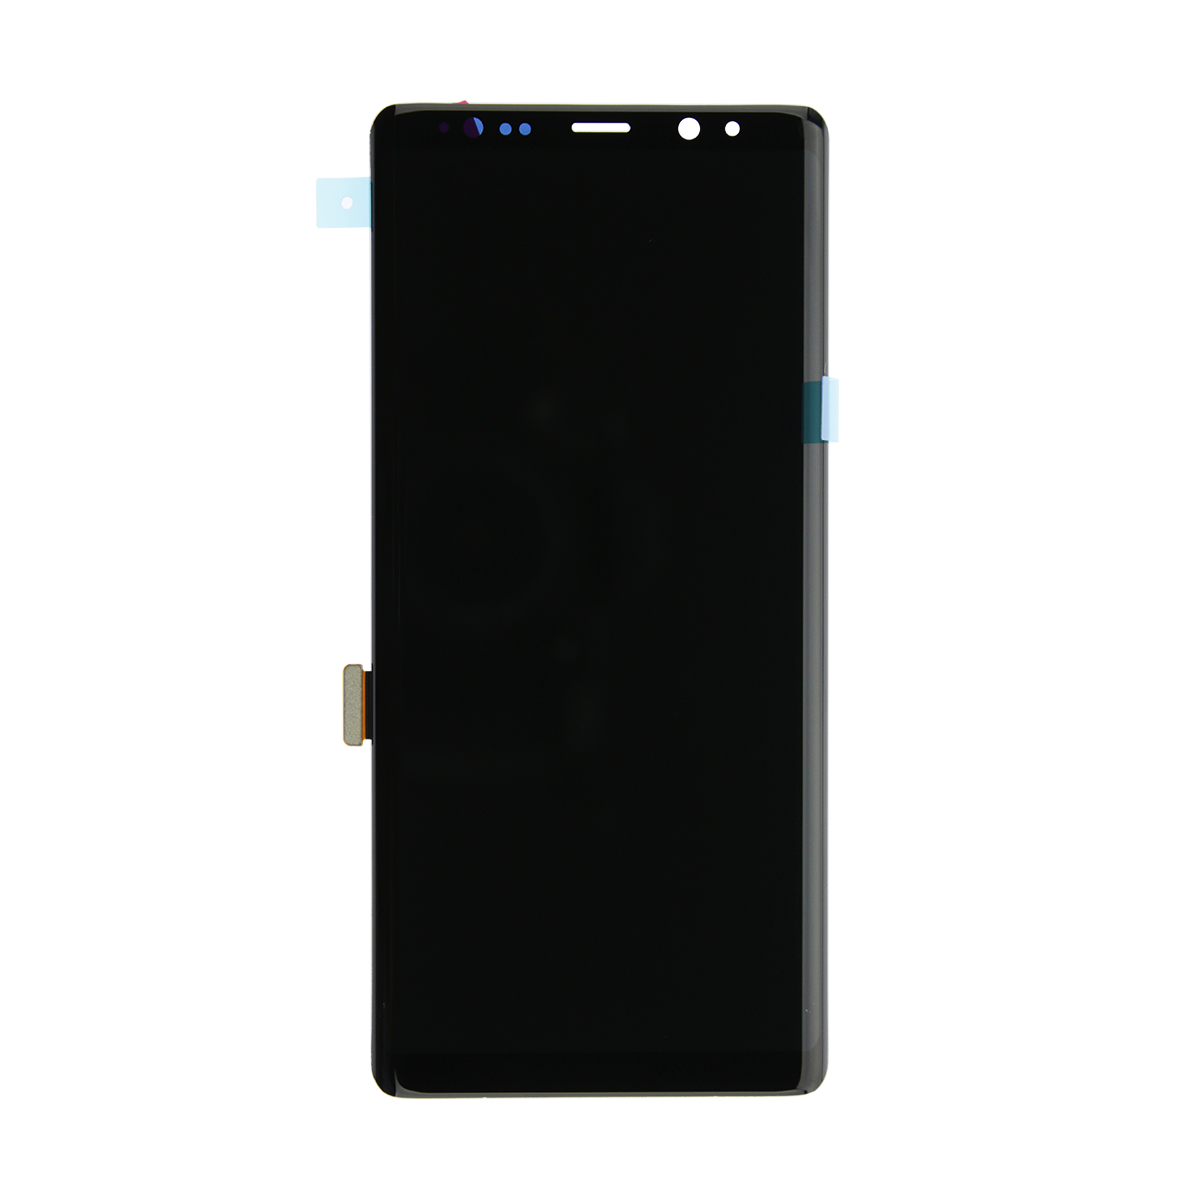 ال سی دی Samsung Galaxy Note 8 N950